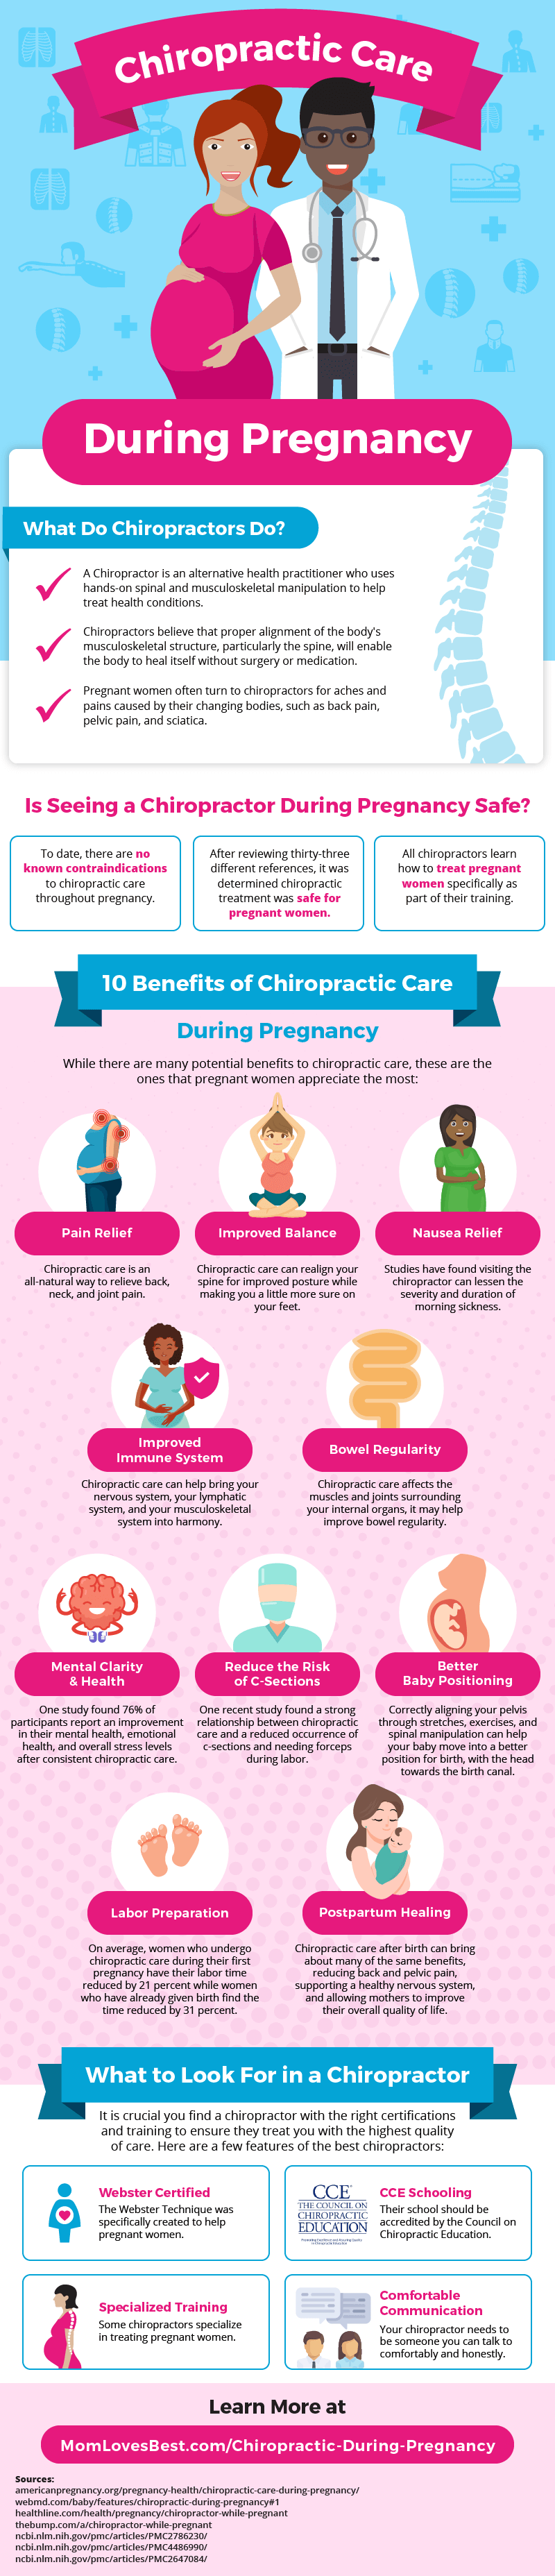 Chiropractic During Pregnancy Infographic